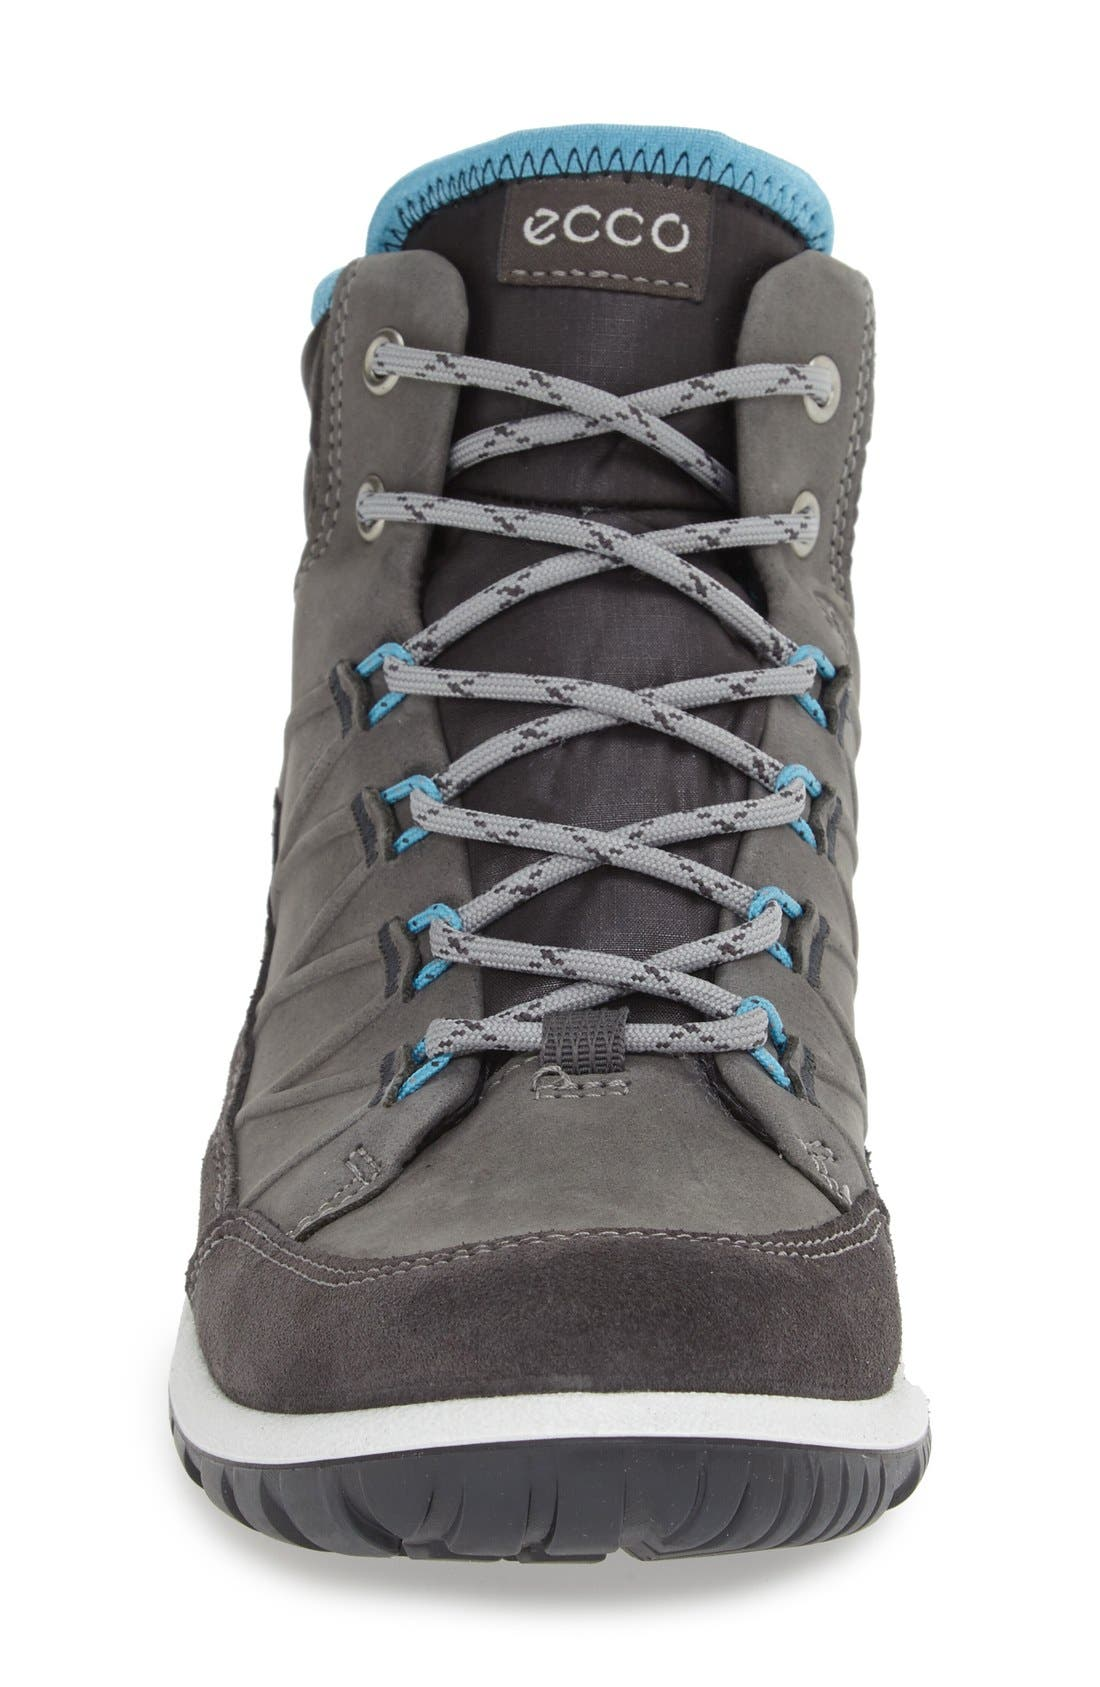 ECCO,                             'Aspina GTX' Waterproof High Top Shoe,                             Alternate thumbnail 4, color,                             MOONLESS OILED SUEDE